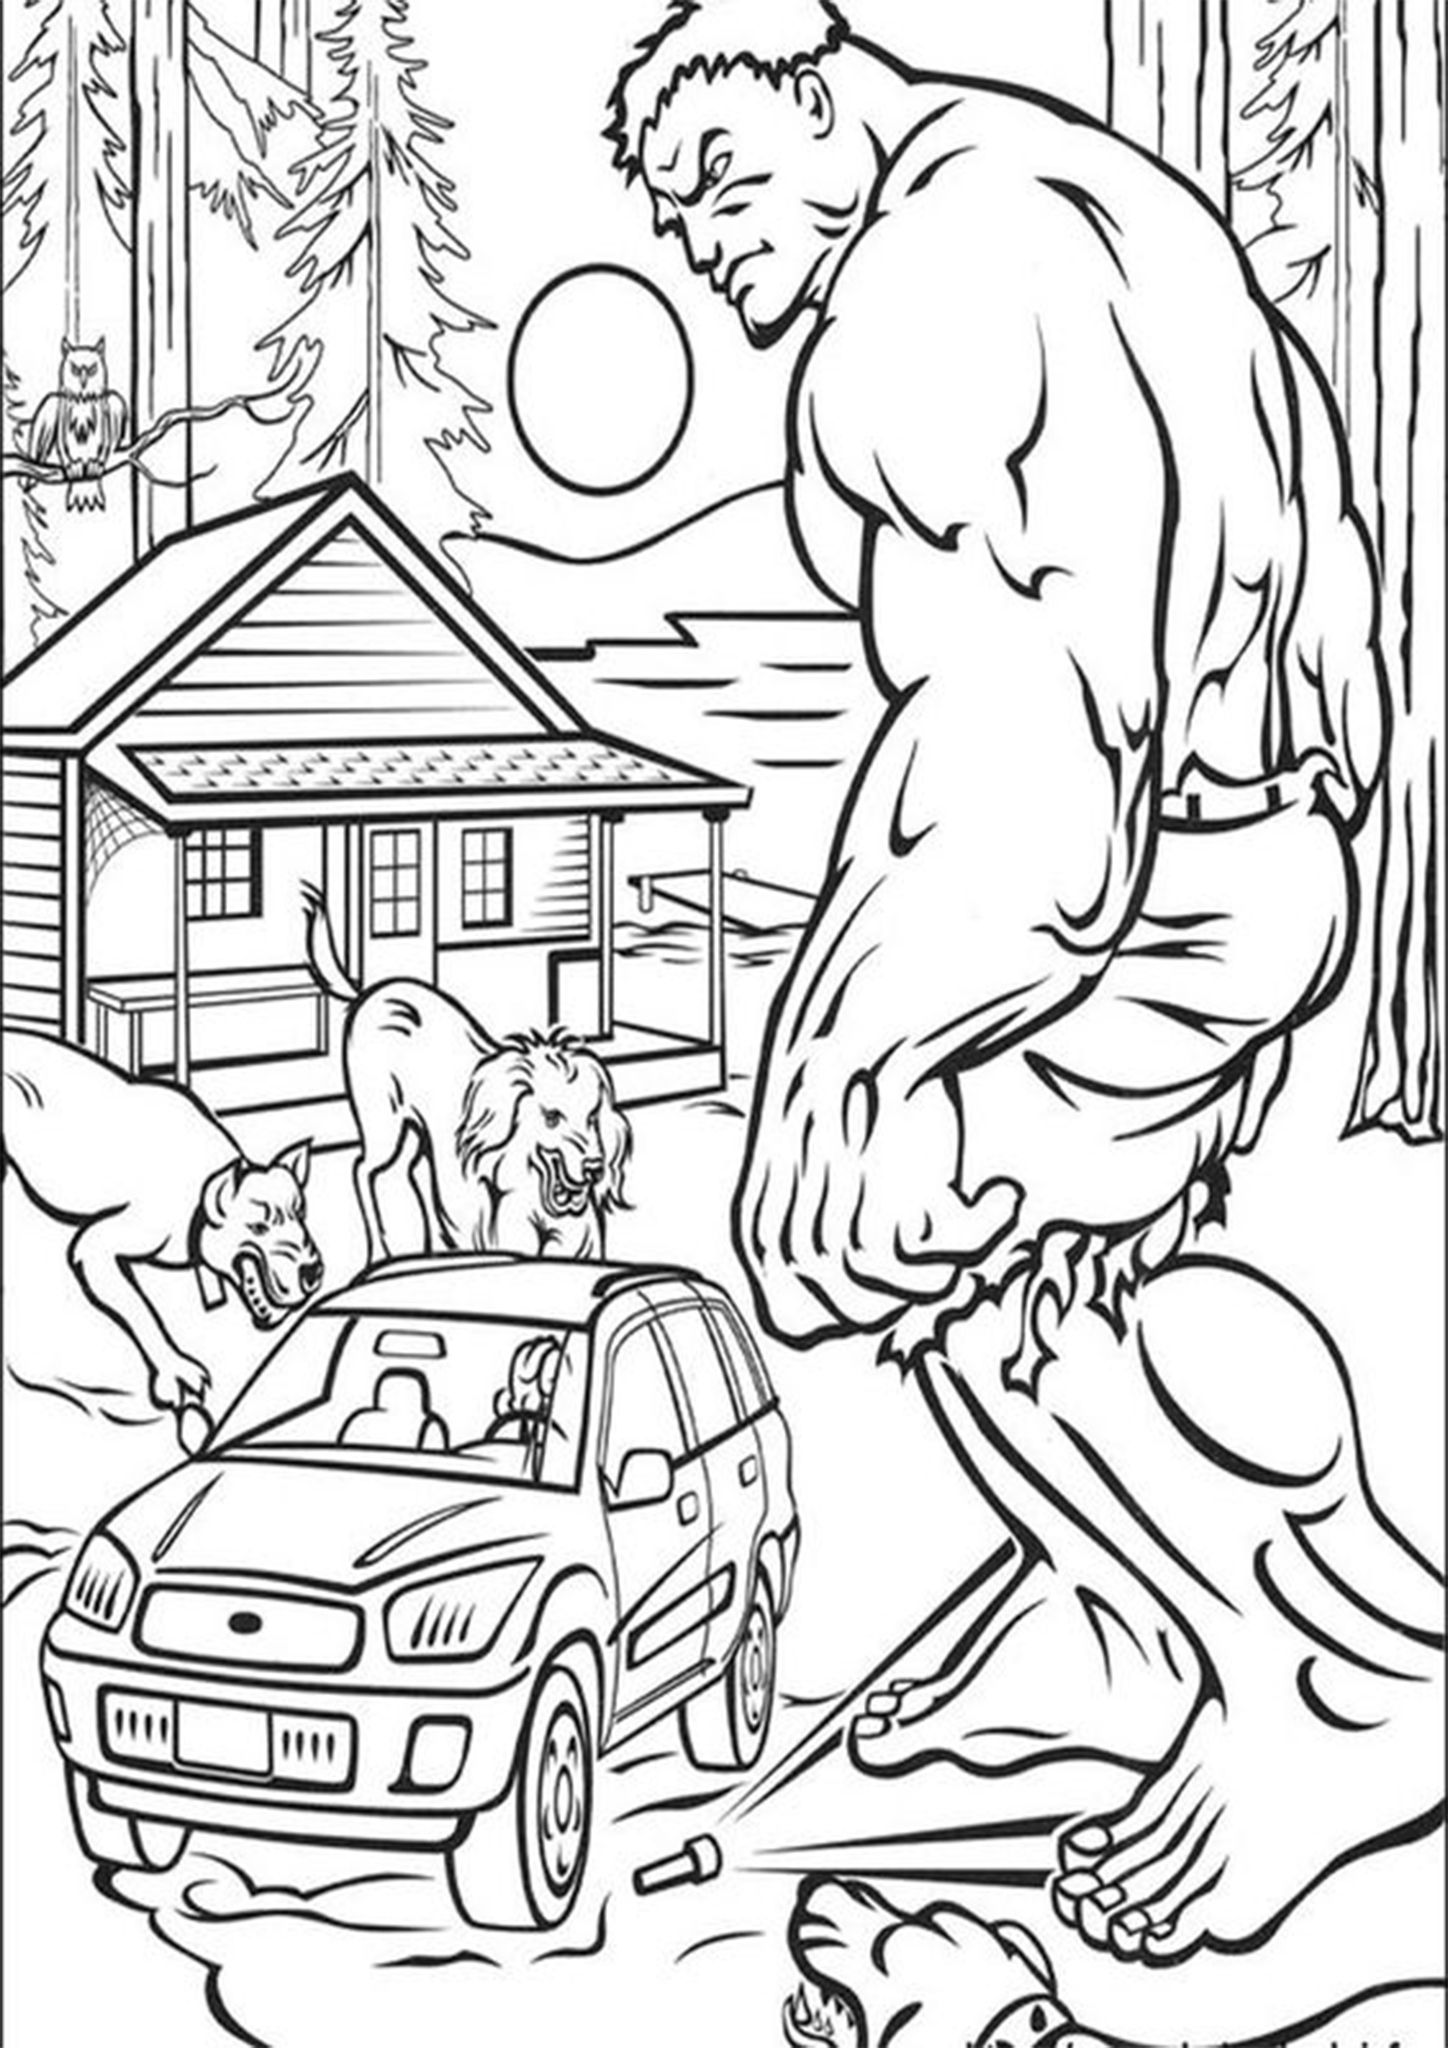 hulk coloring pages to print free printable hulk coloring pages for kids cool2bkids hulk to print pages coloring